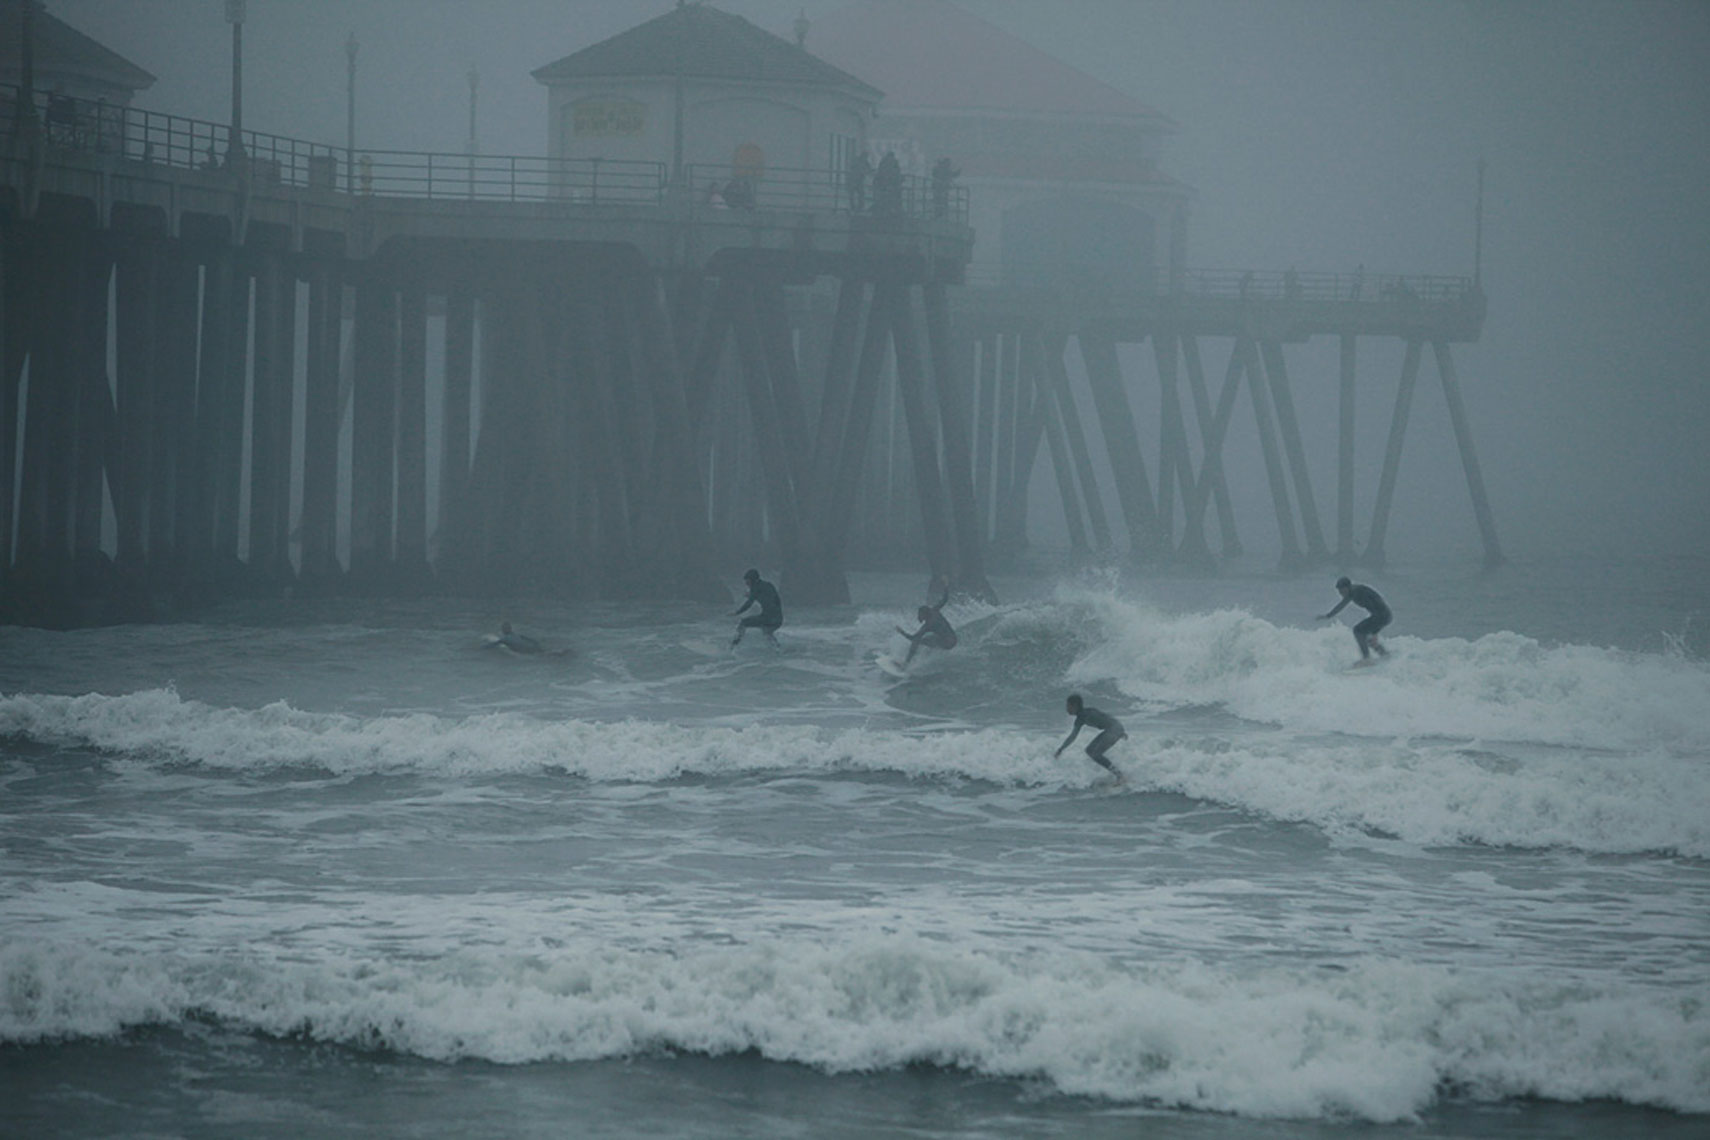 huntington beach by PETER LueDERS